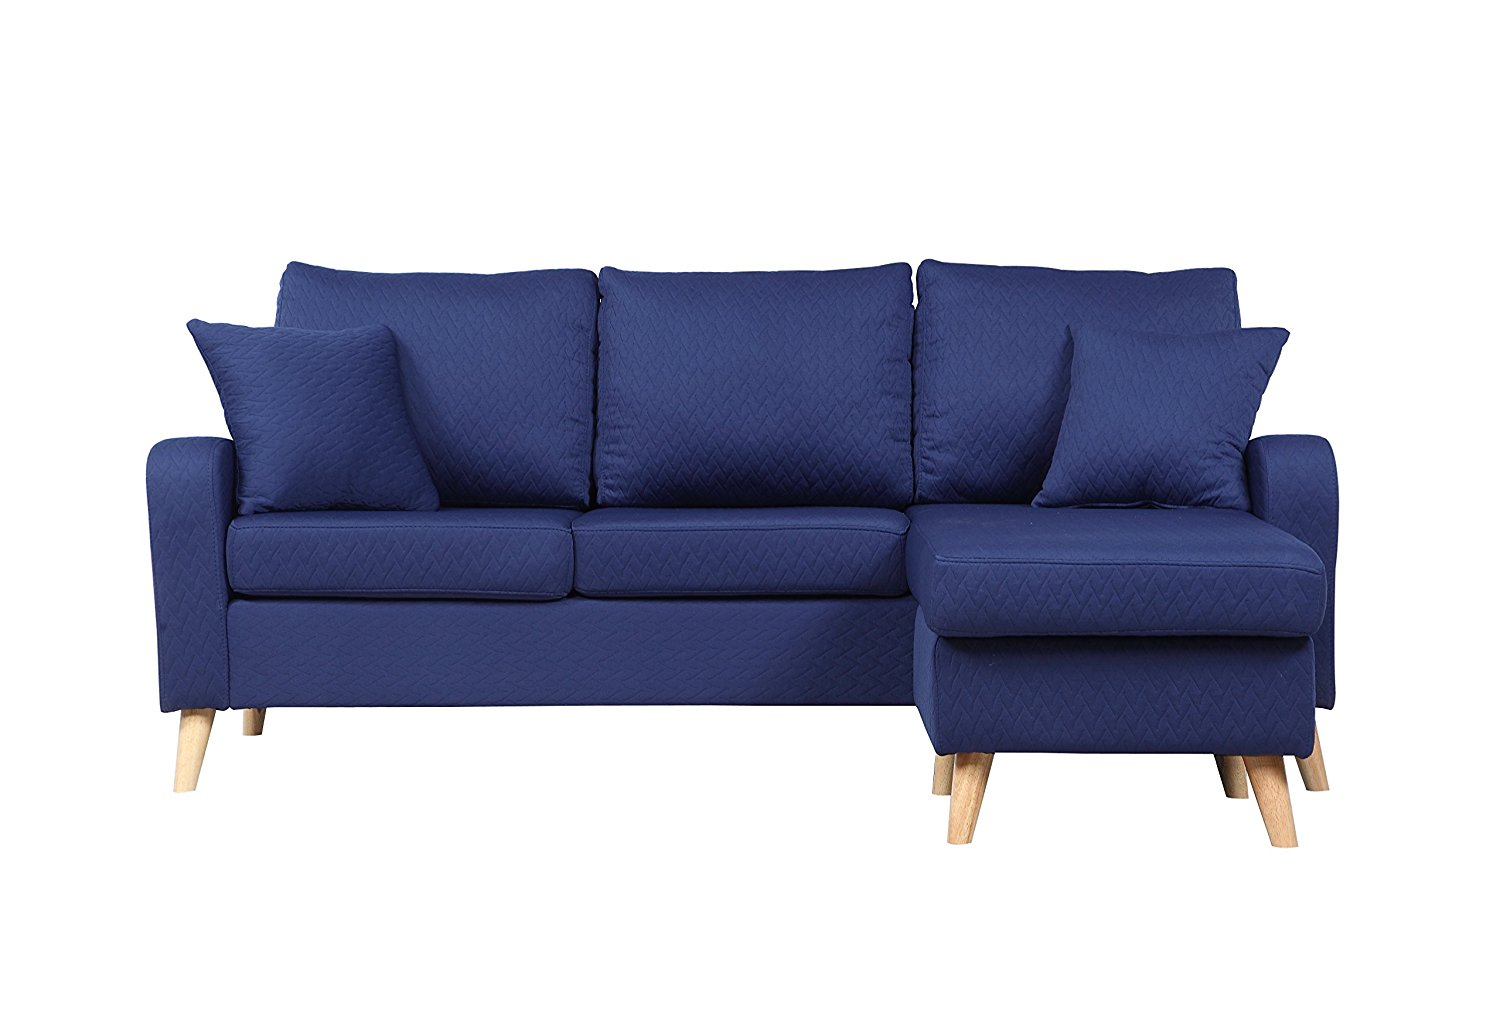 Modern design sectional Sofa with Reversible Chaise + 10 Colors